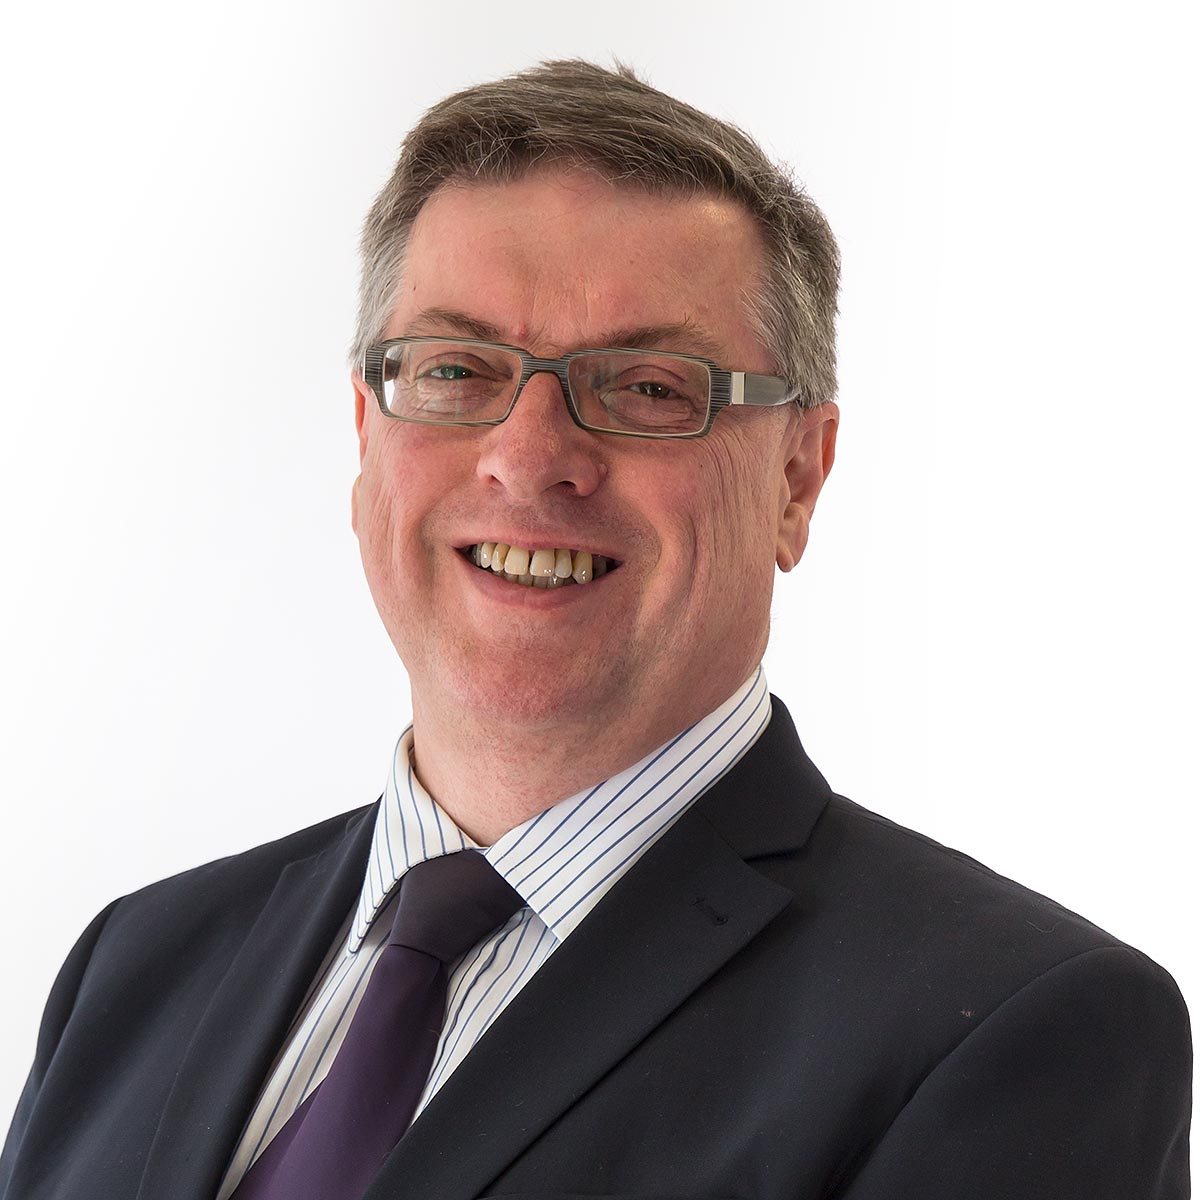 Paul Rolfe, Director of Paul Rolfe Sales and Letting